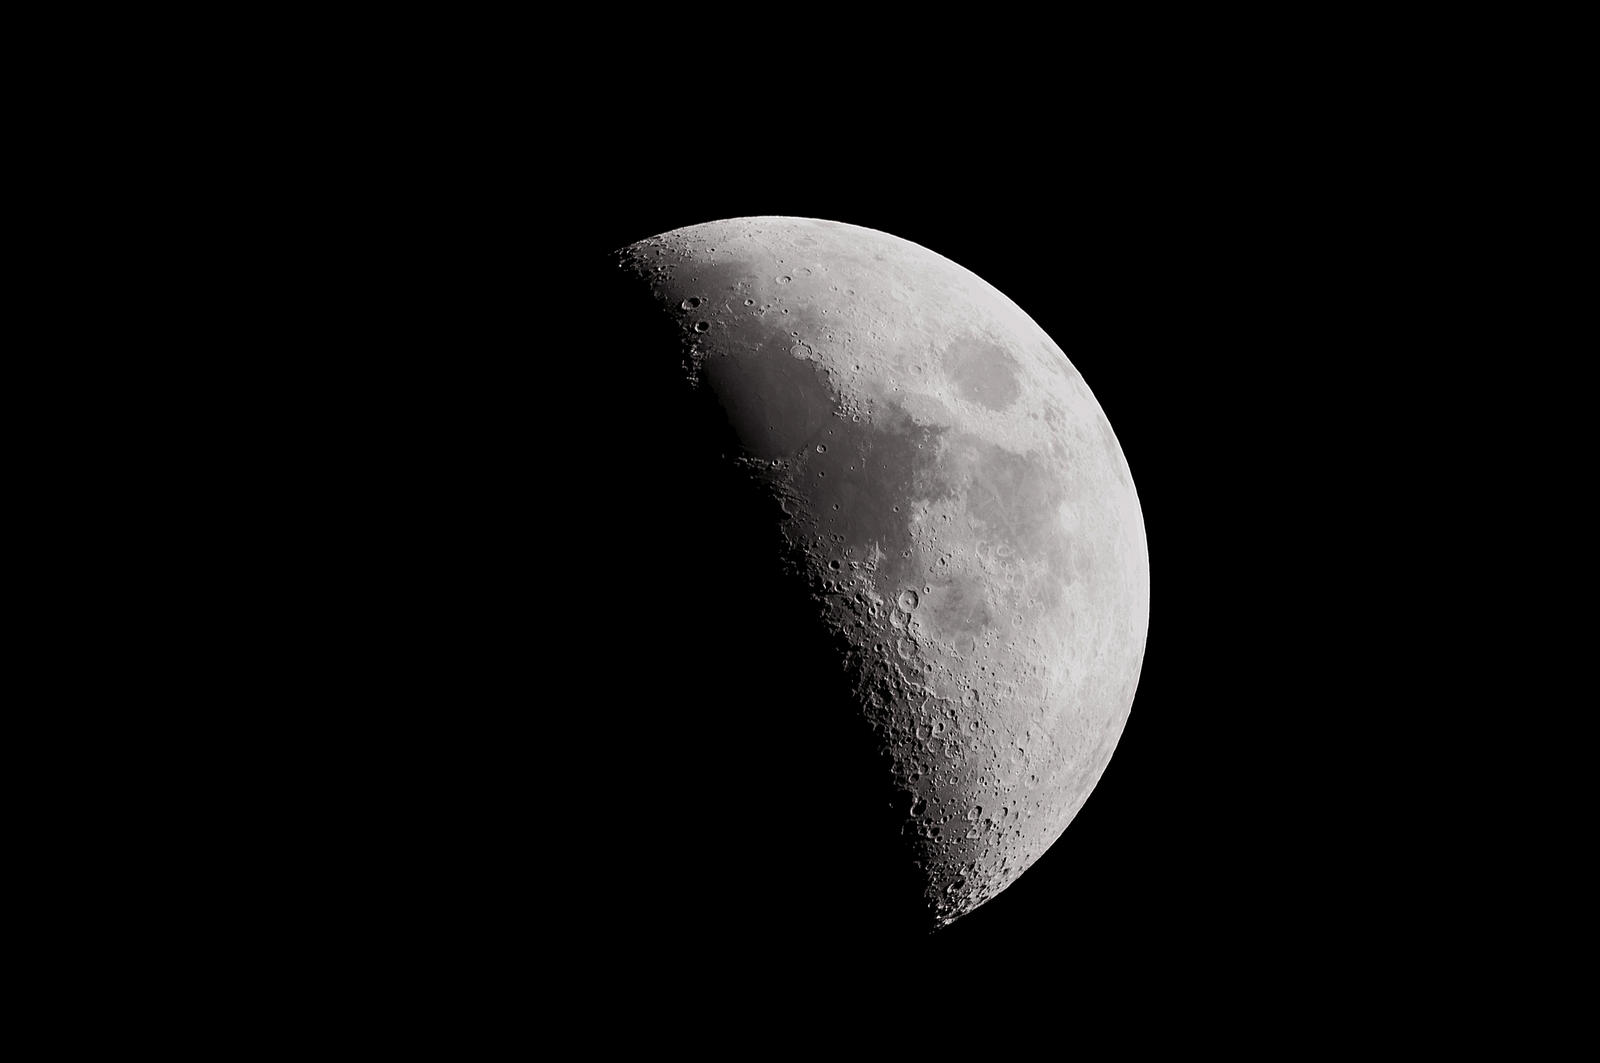 new post processing for moon with bresser messier by Arayashikinoshaka